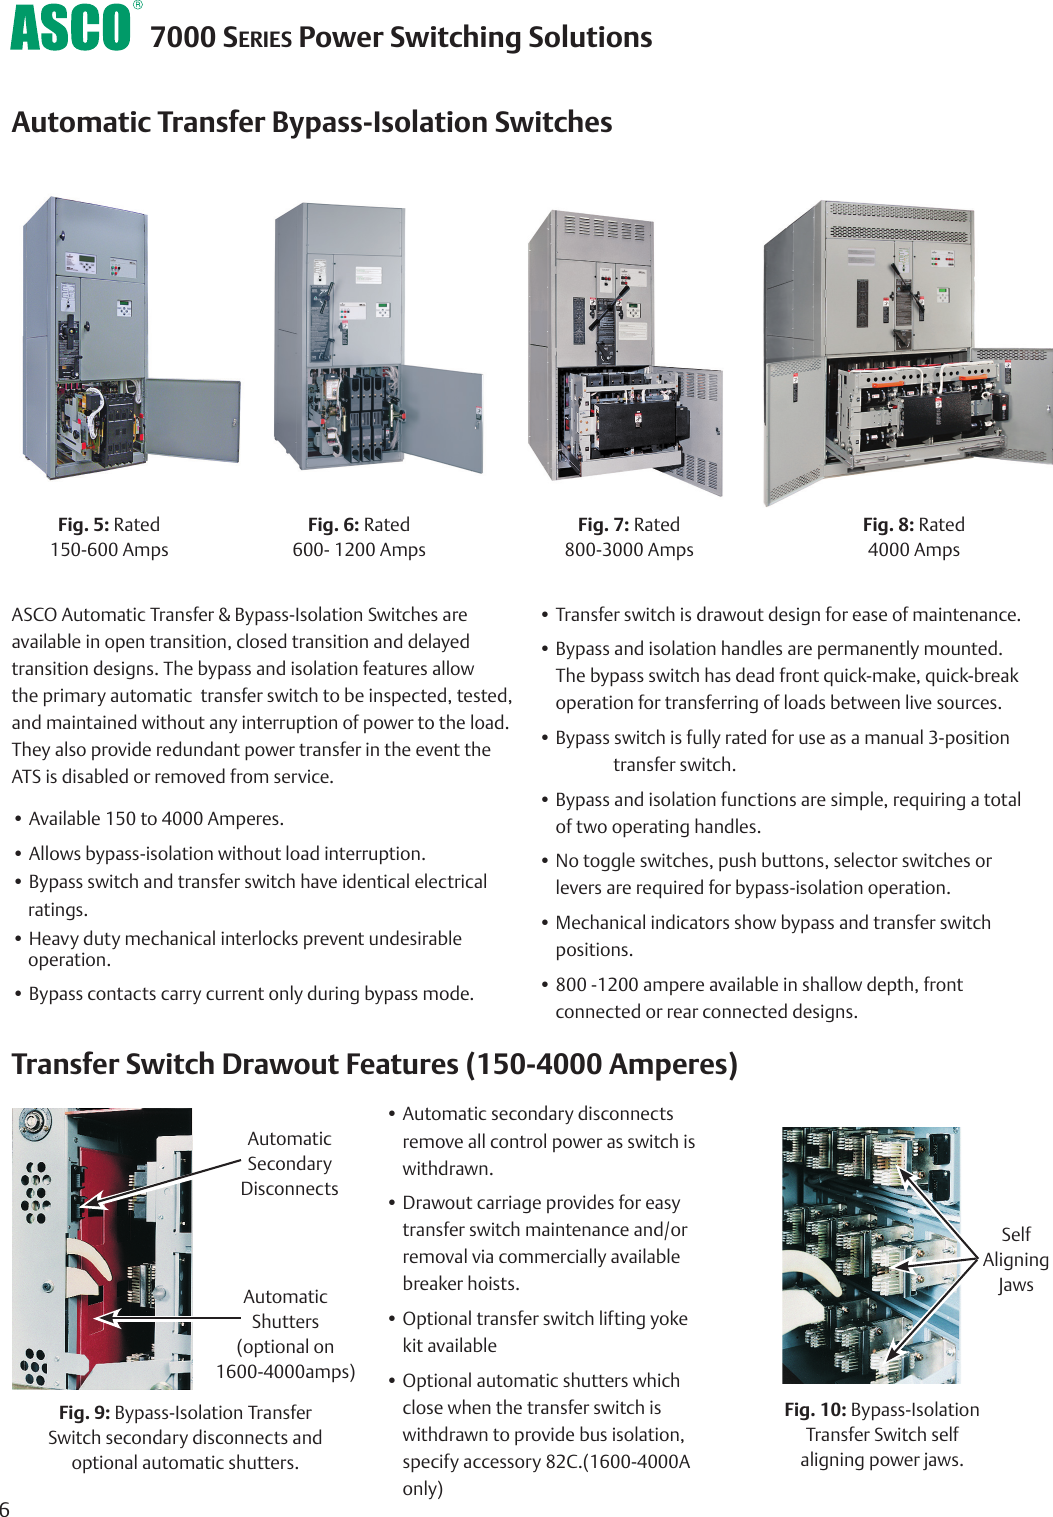 Asco Series 165 Automatic Transfer Switches